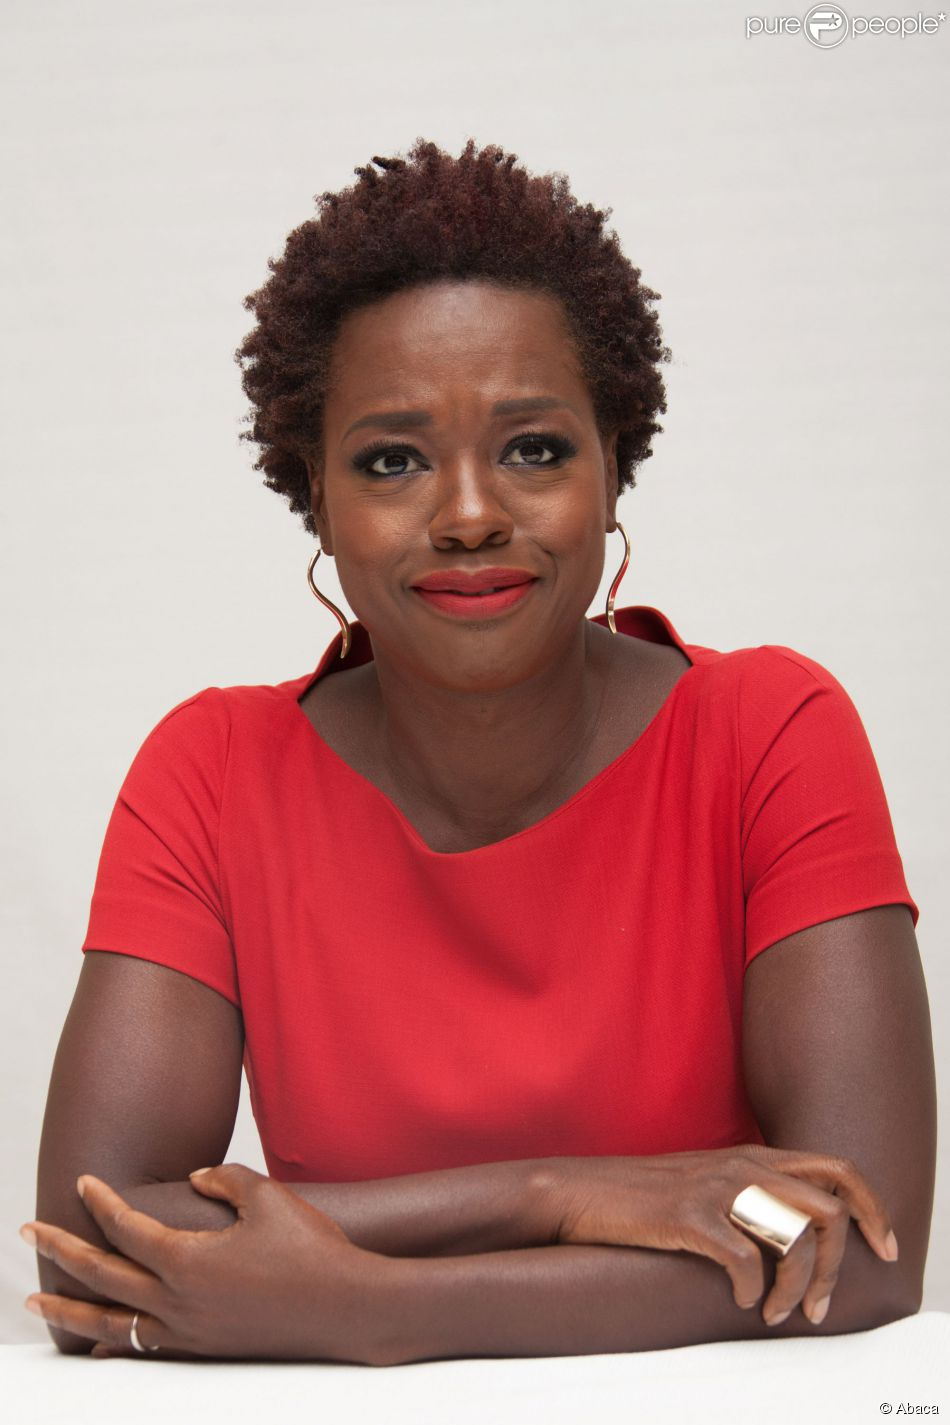 Viola Davis lors de la conférence de presse de la série How to Get Away with Murder à Los Angeles le 2 octobre 2014